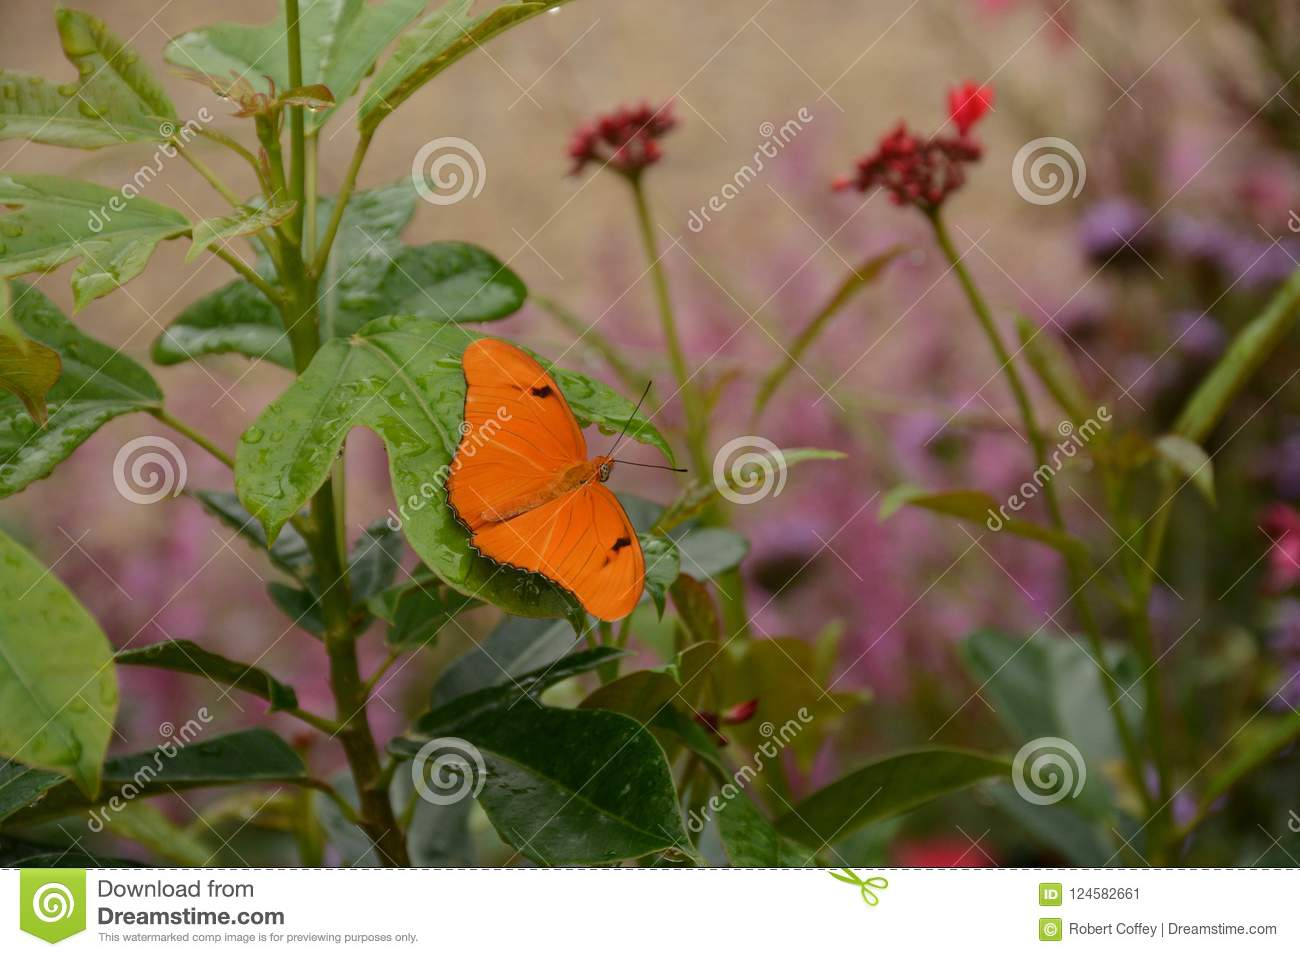 Julia Longwing Butterfly In The Garden Stock Image - Image of ...